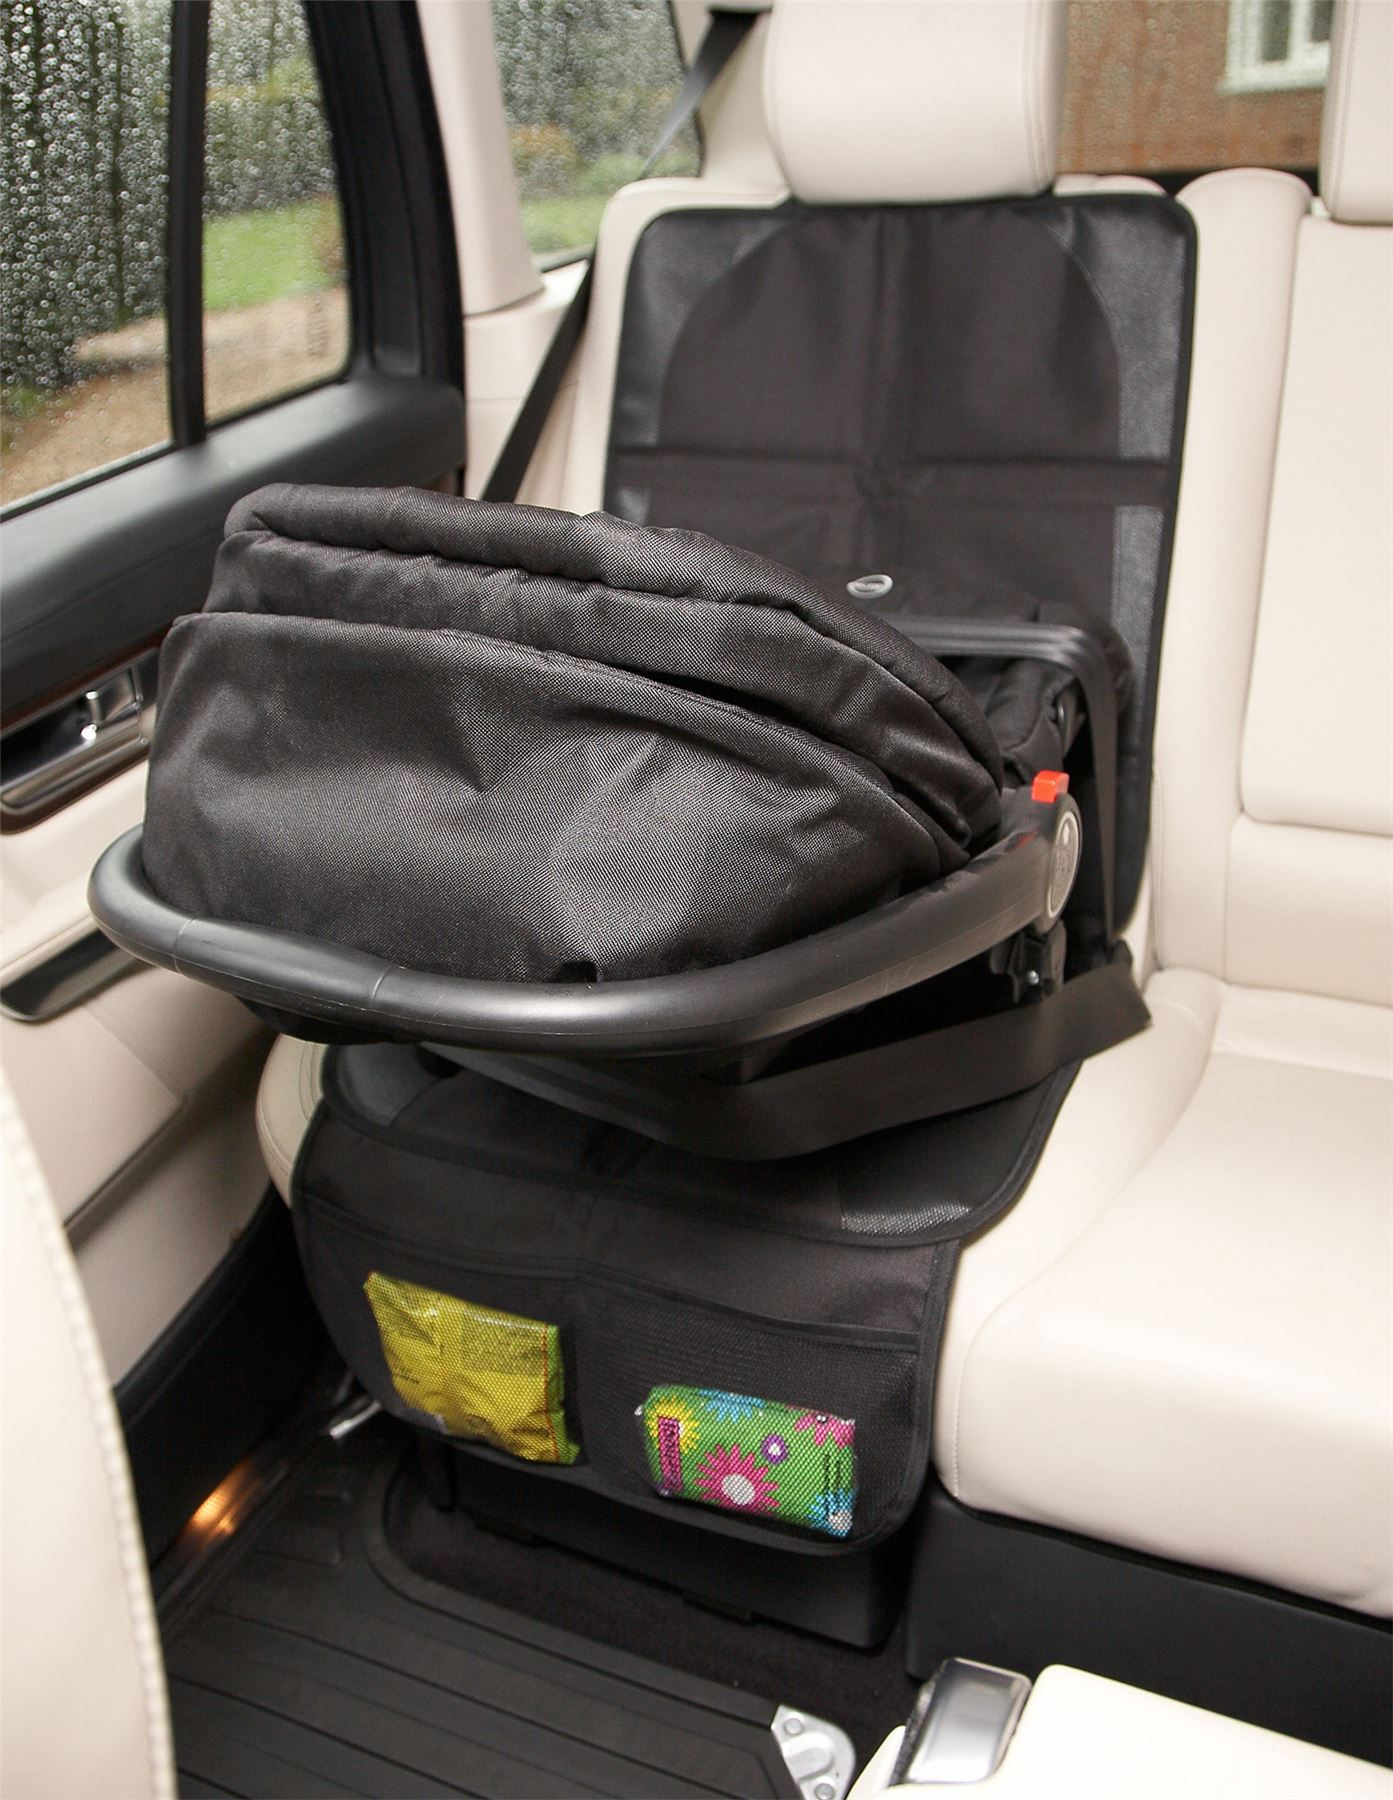 Clippasafe CAR-GO STORAGE BOX Car Seat Accessory BN